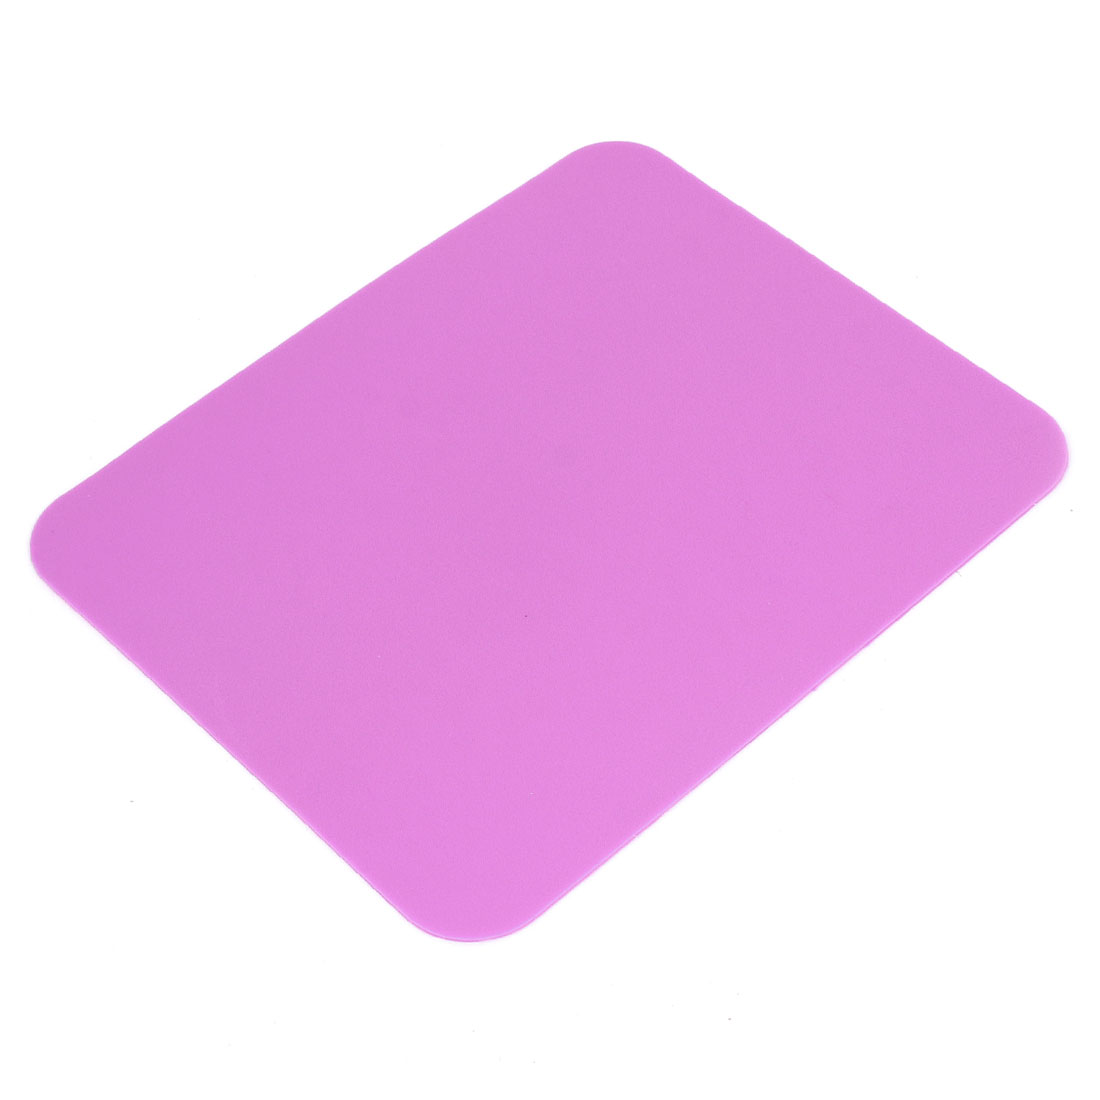 Review Notebook Computer 17.5 x 21.5cm Soft Silicone Gaming Mouse Mice Pad Mat Fuchsia Before Special Offer Ends